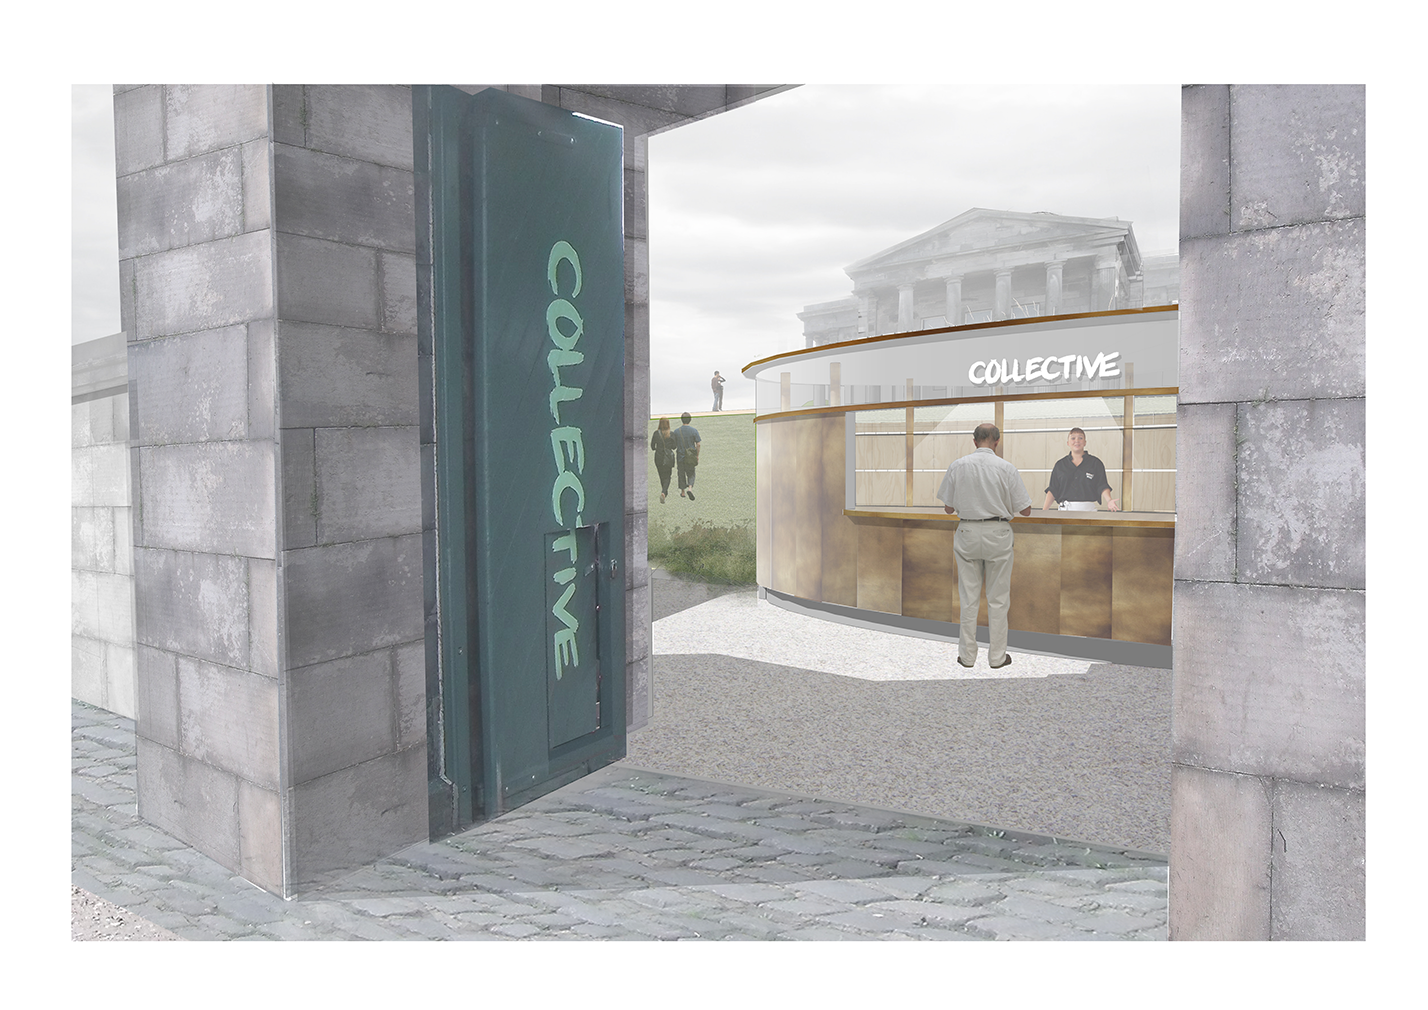 CityObservatoryPlans02_Gate_Entrance_with_Coffee_Kiosk_and_Information_Point.png